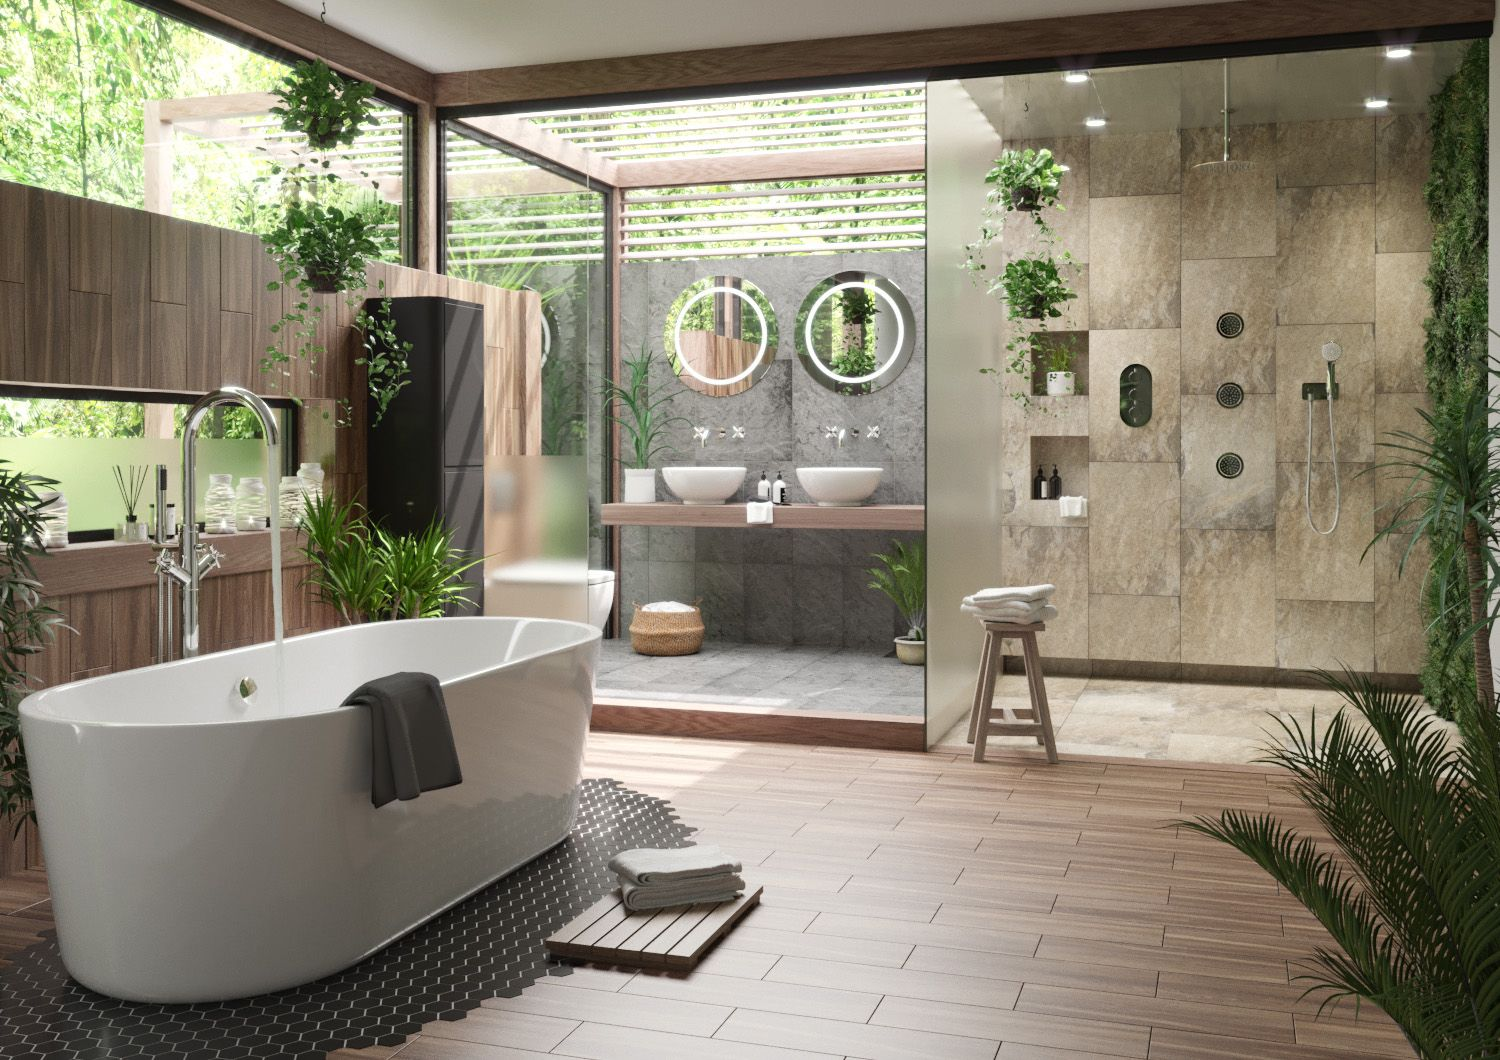 Bathroom Ideas Tropical Outdoor Bathroom Design Zen Bathroom Design Spa Bathroom Design